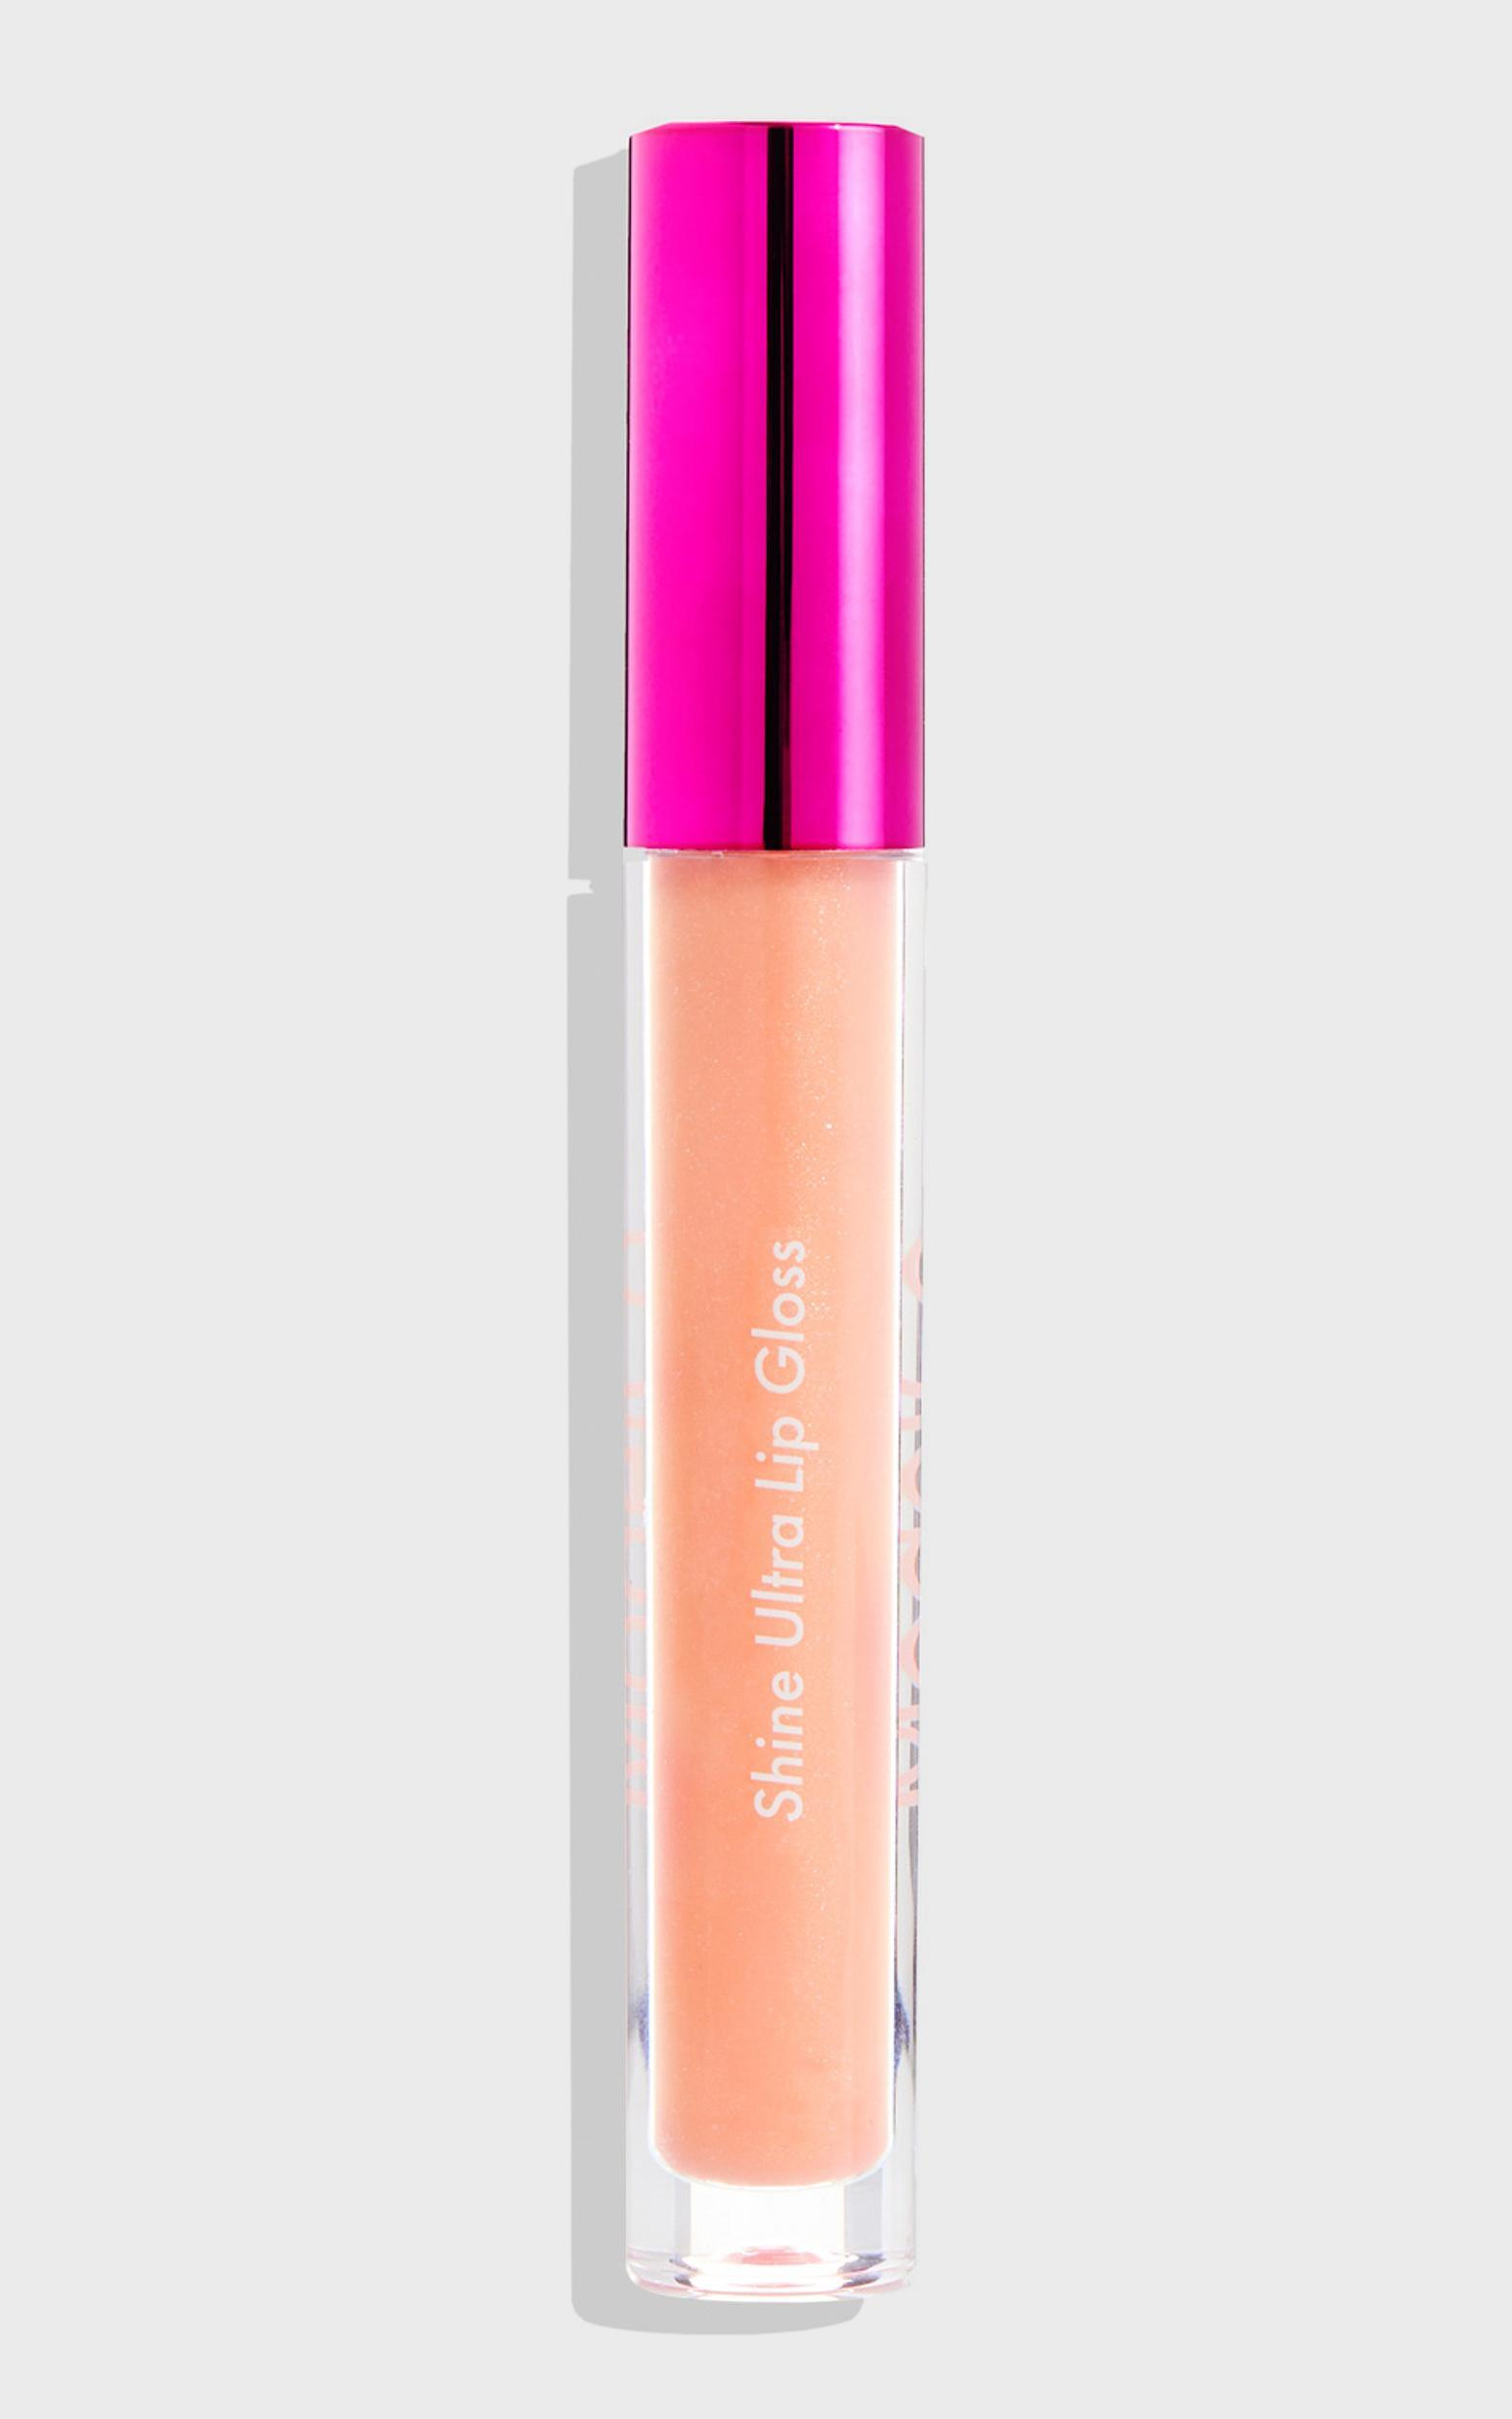 Modelco - Shine Ultra Lip Gloss - Striptease , , hi-res image number null